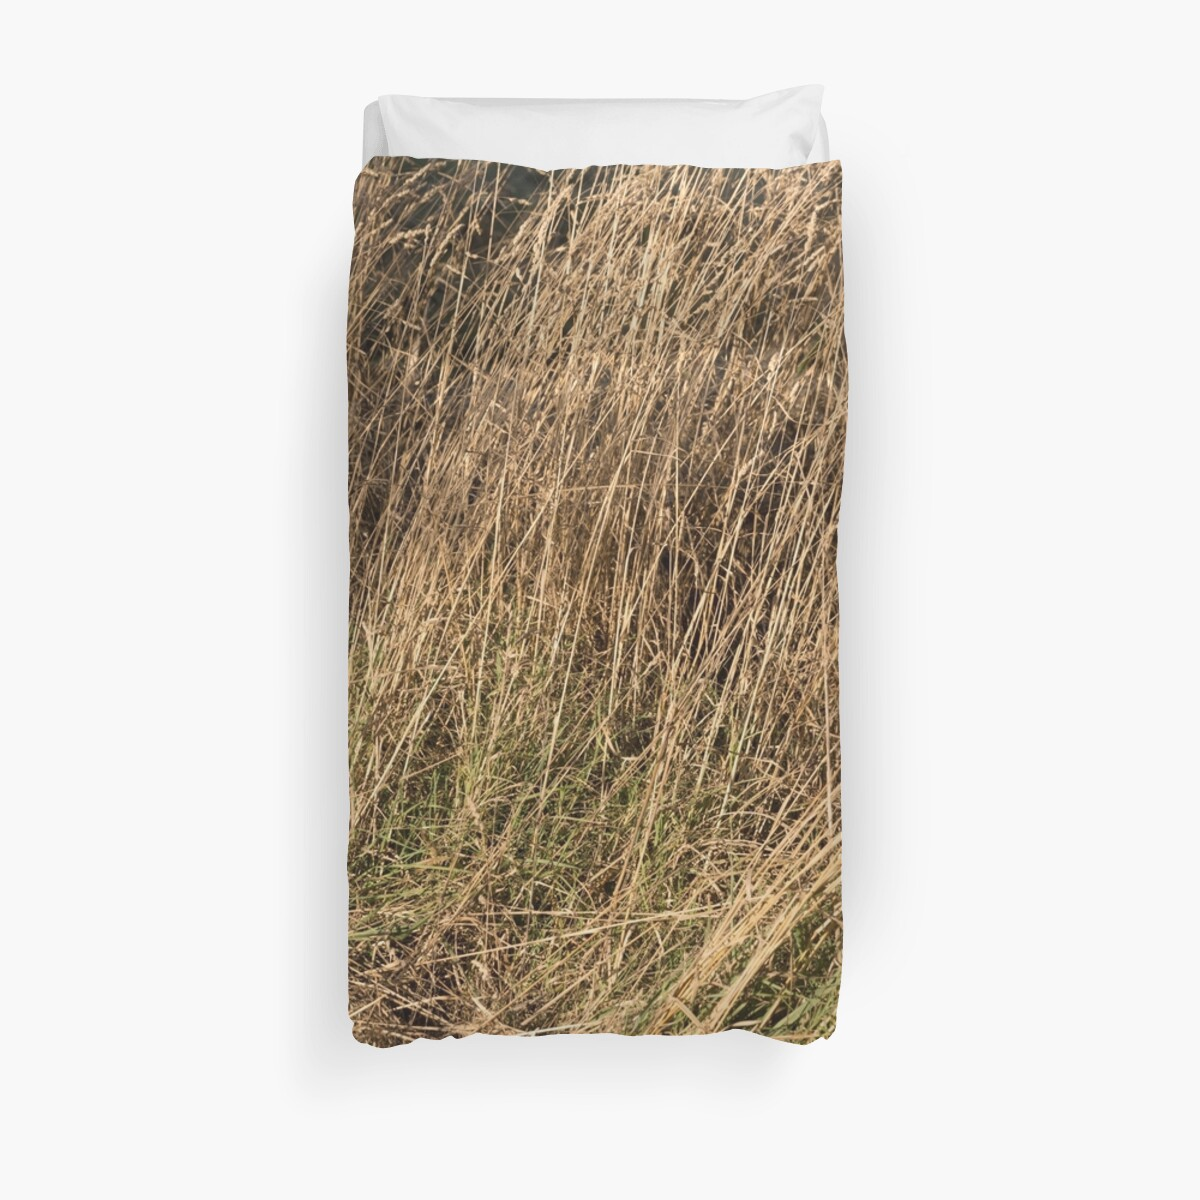 Dried Grassfield Pushed by textural